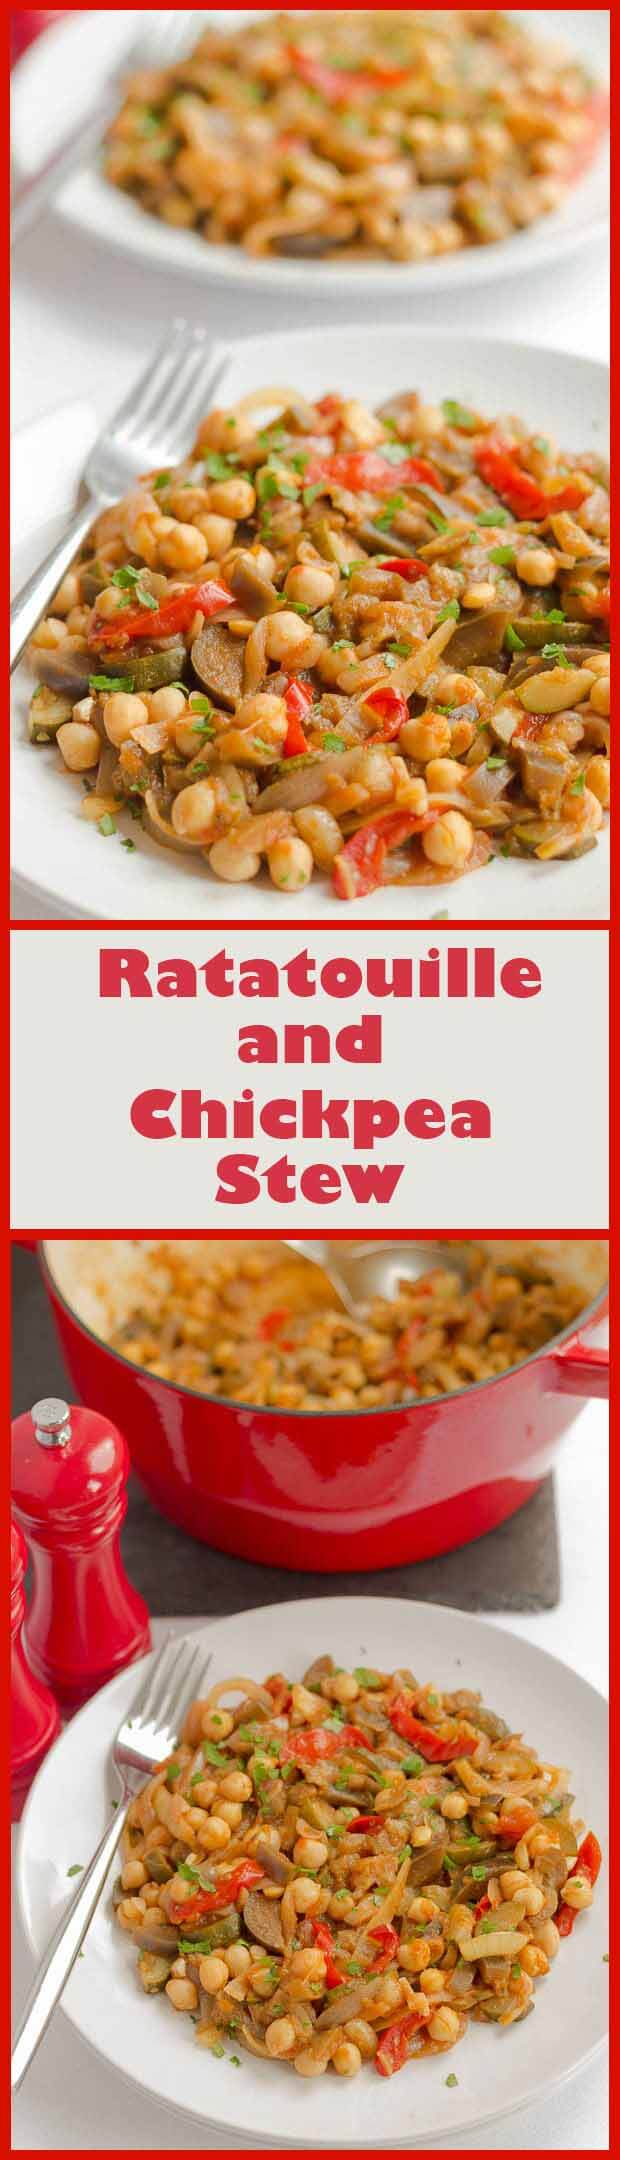 Take the classic, traditional, French Provencal stewed vegetable dish, Ratatouille, add some protein packed chickpeas, lemon juice and a lightly sautéed onion and you end up with this deliciously tasty vegetarian ratatouille and chickpea stew.